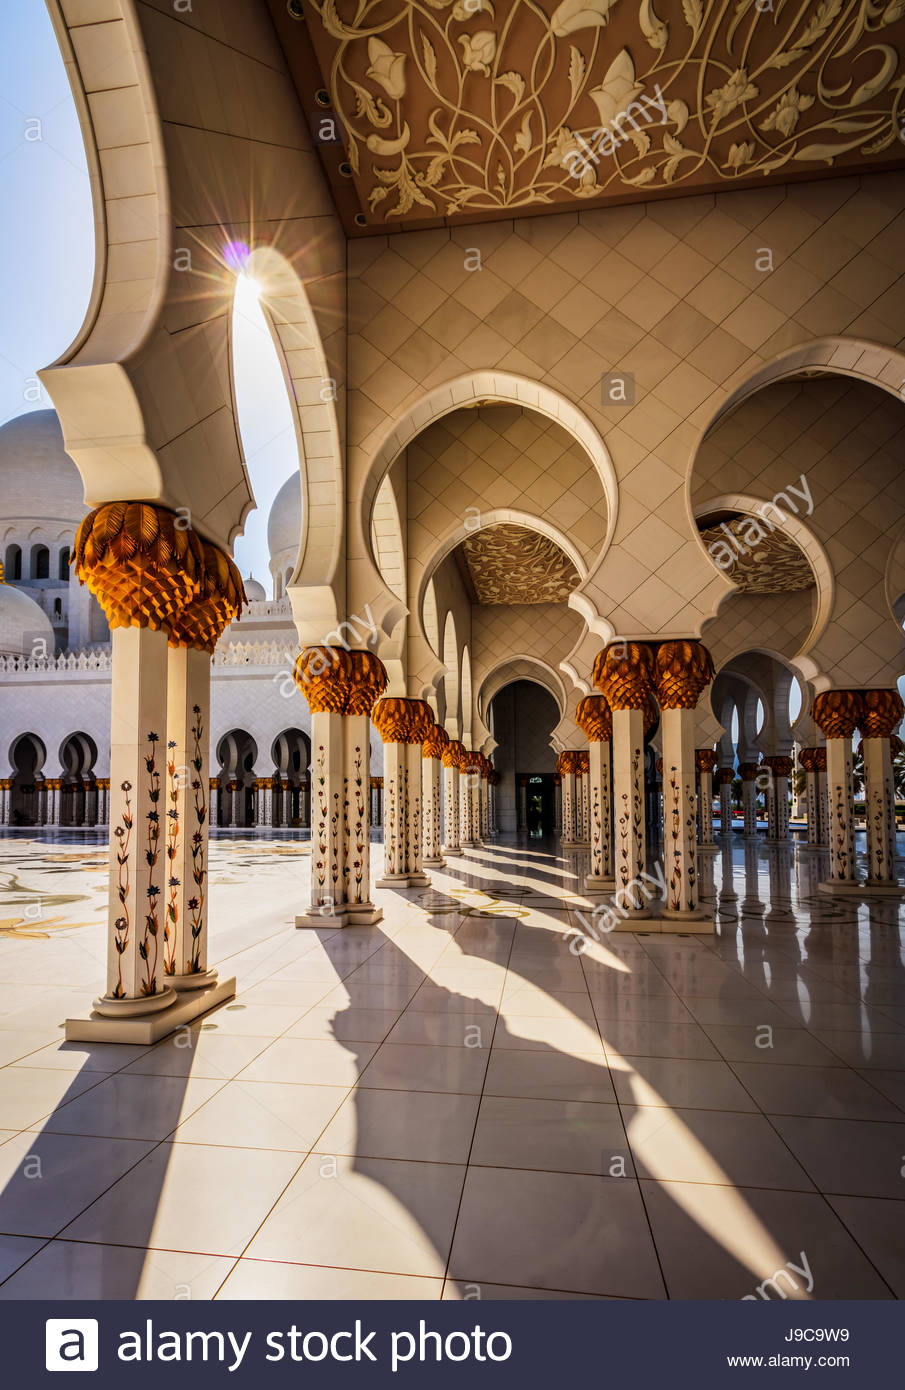 A view inside the Sheikh Zayed Grand Mosque in Abu Dhabi. - Stock Image